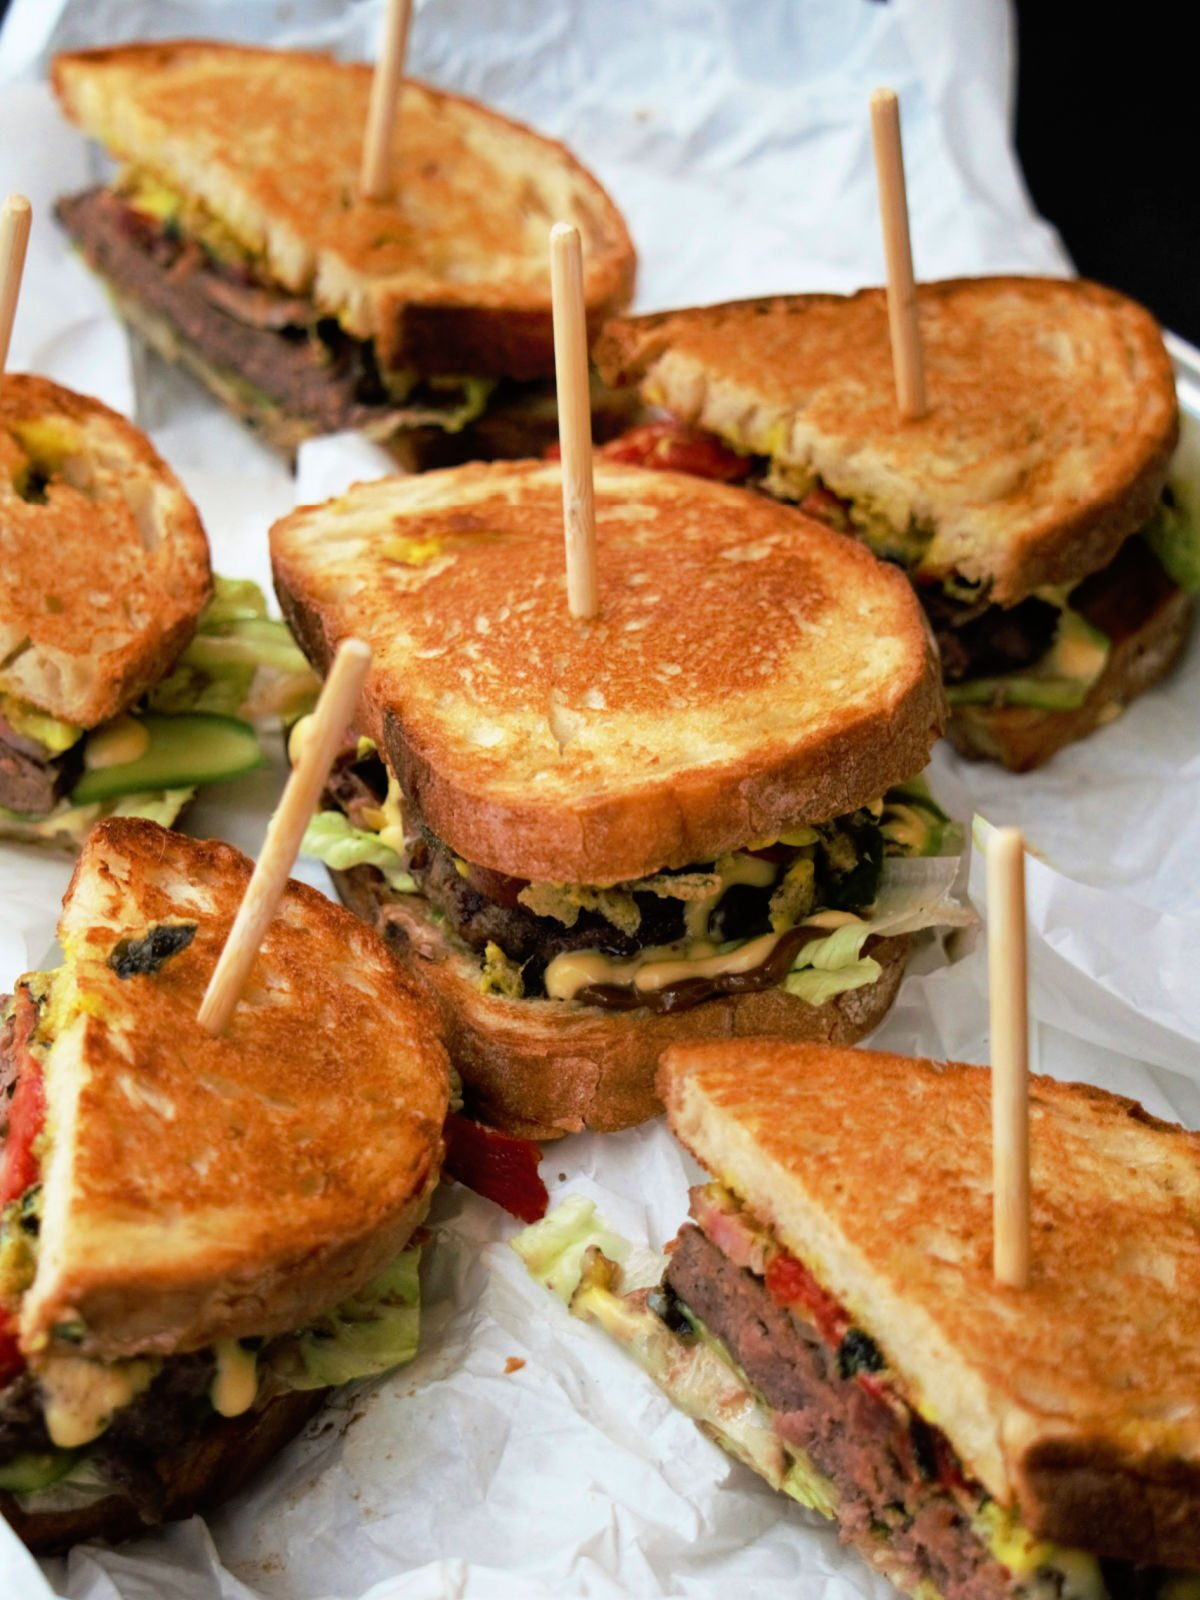 Plate of grilled beef burgers on toasted bread.